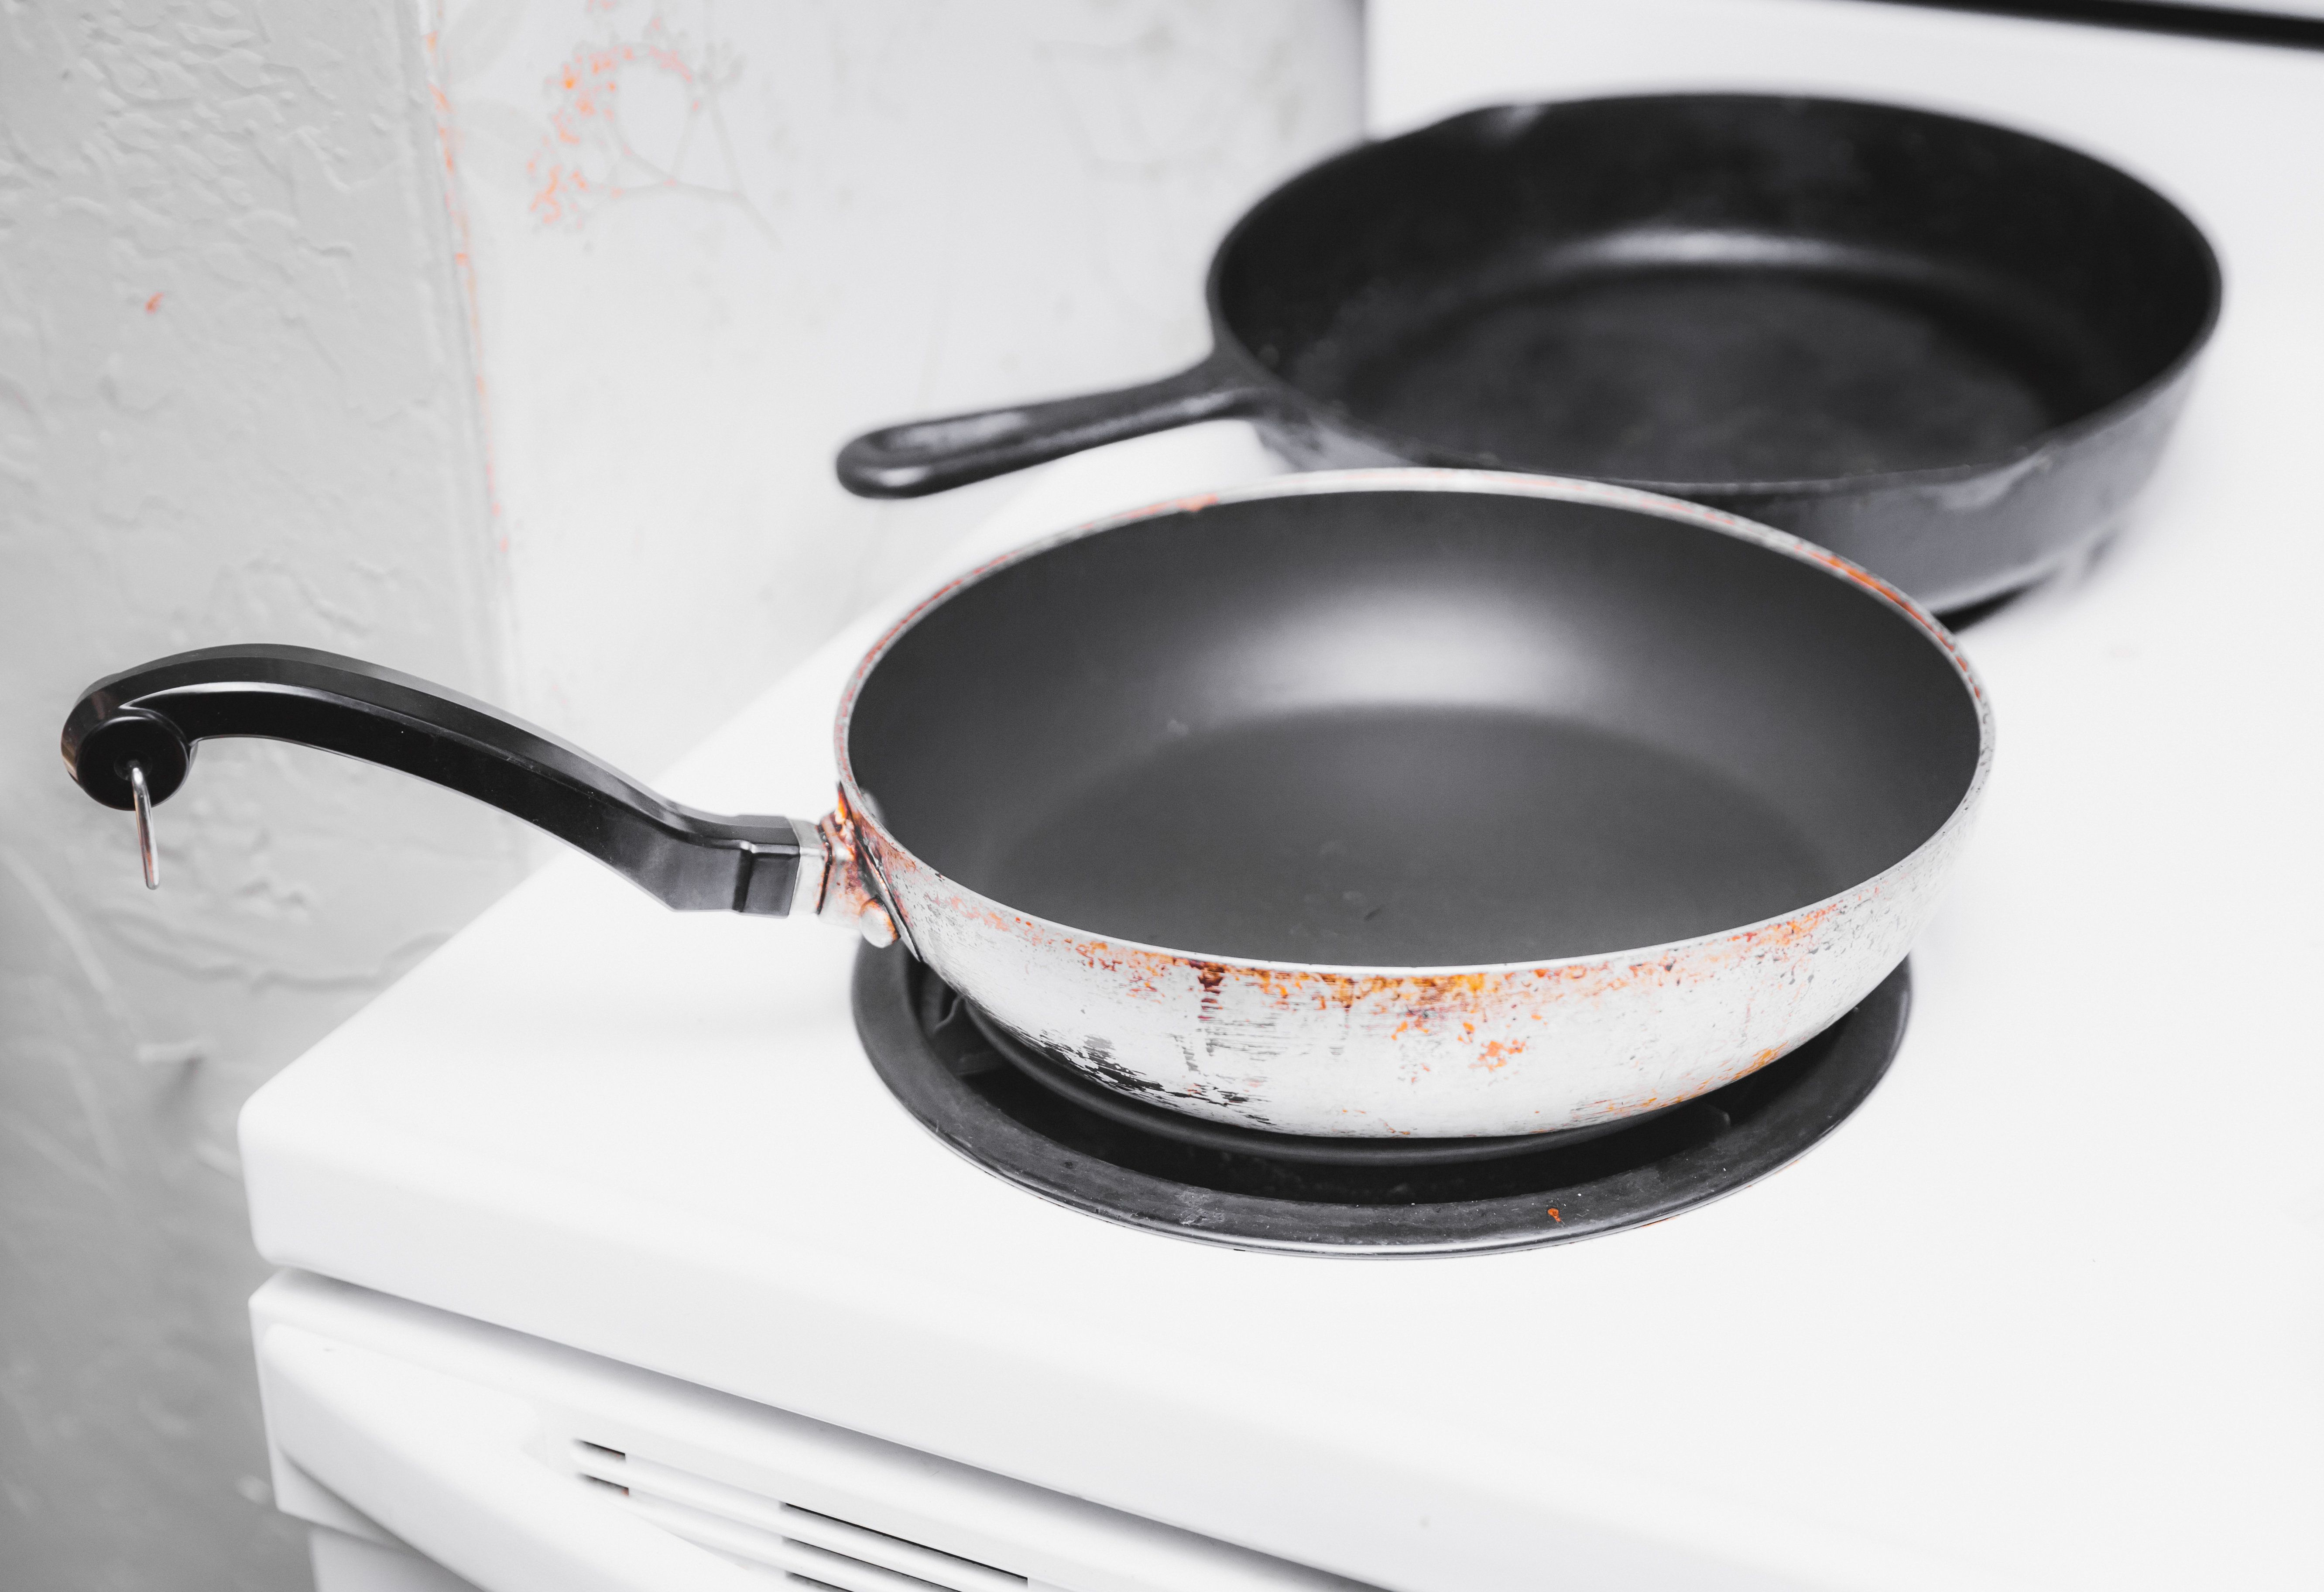 Chemicals In Non-Stick Pans Have Been Linked To Smaller Penises And We Have So Many